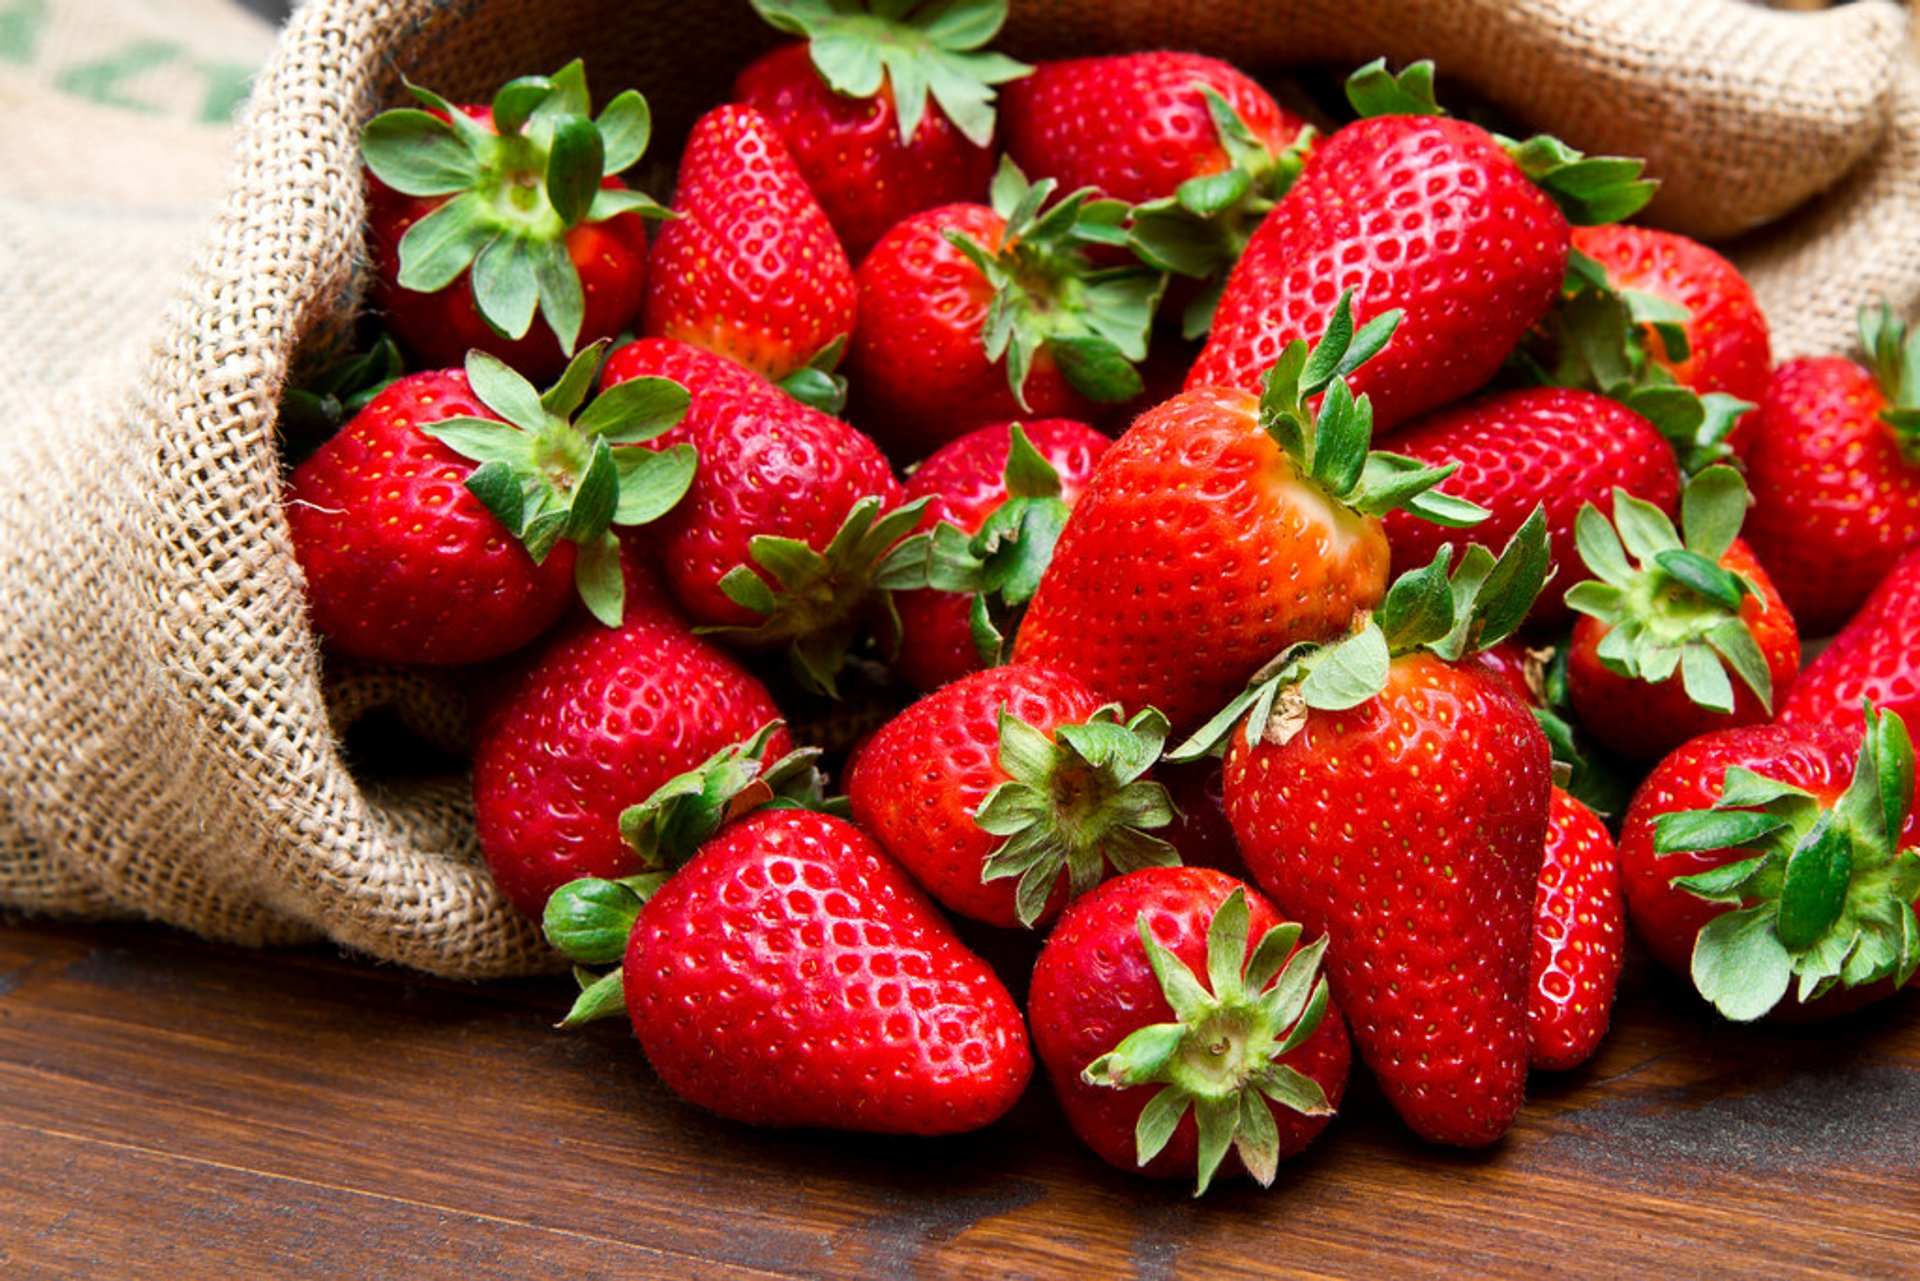 Strawberry Season in Italy 2019 - Best Time